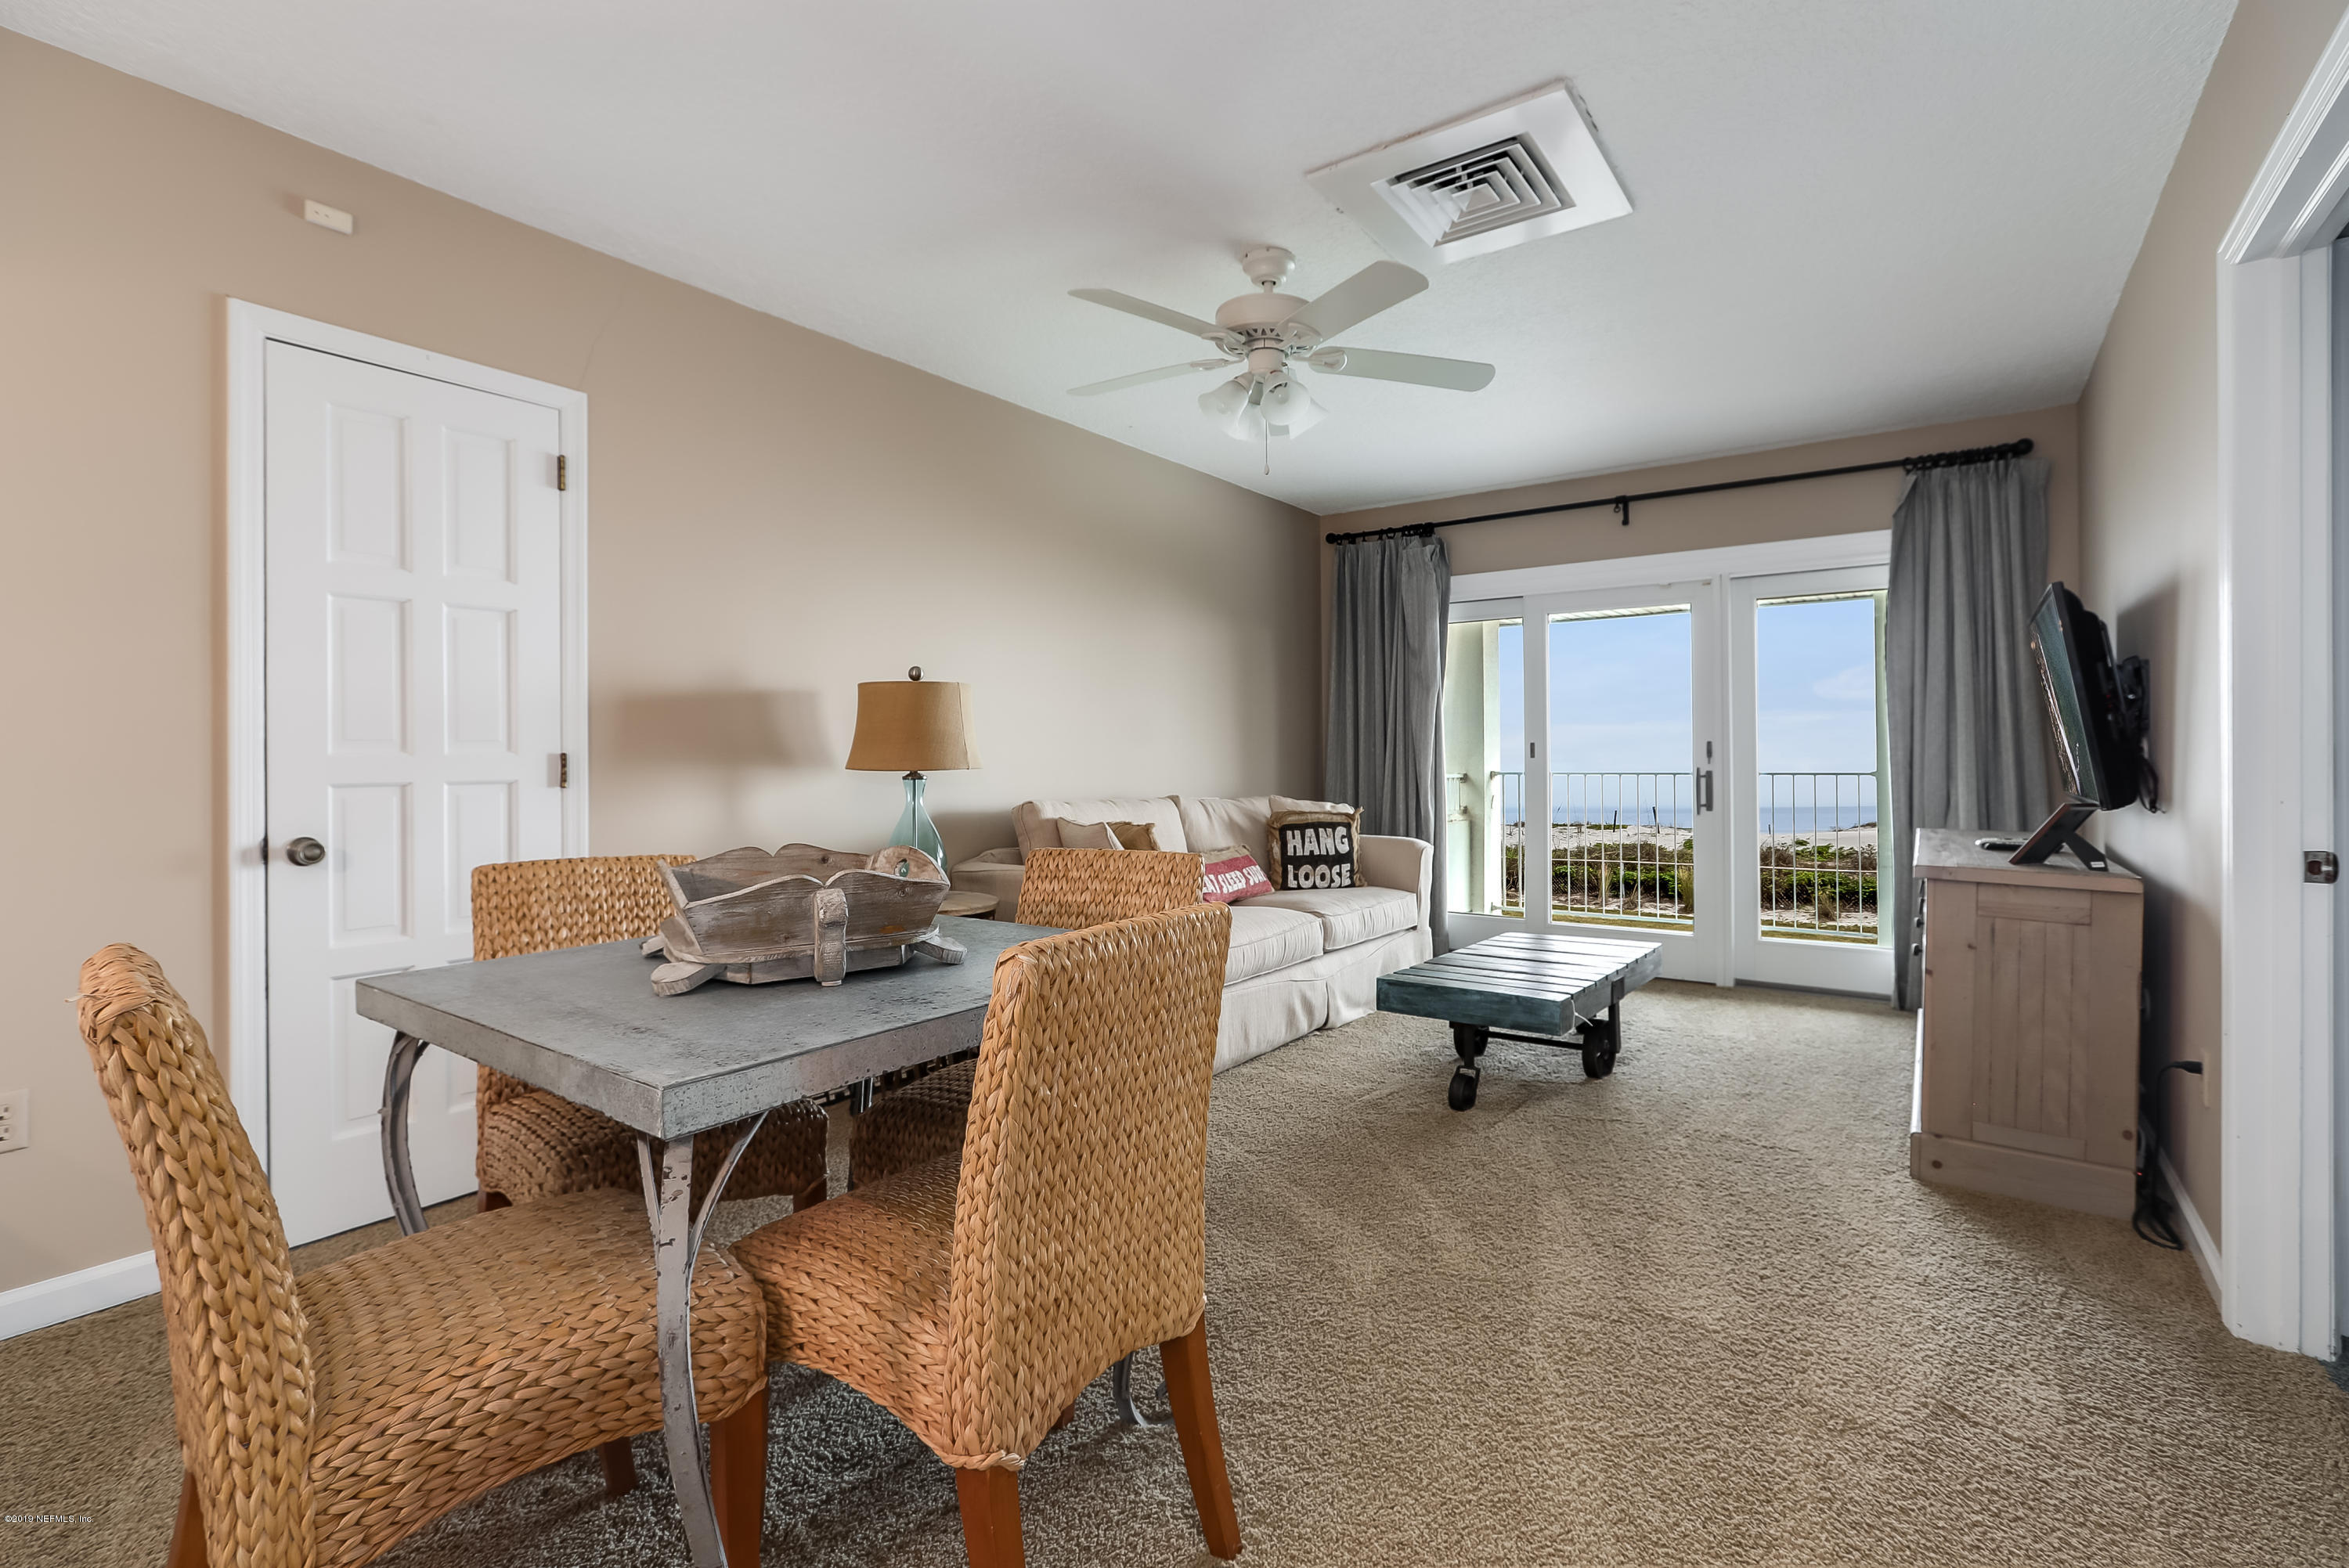 77 PONTE VEDRA, PONTE VEDRA BEACH, FLORIDA 32082, 5 Bedrooms Bedrooms, ,5 BathroomsBathrooms,Residential - single family,For sale,PONTE VEDRA,972697